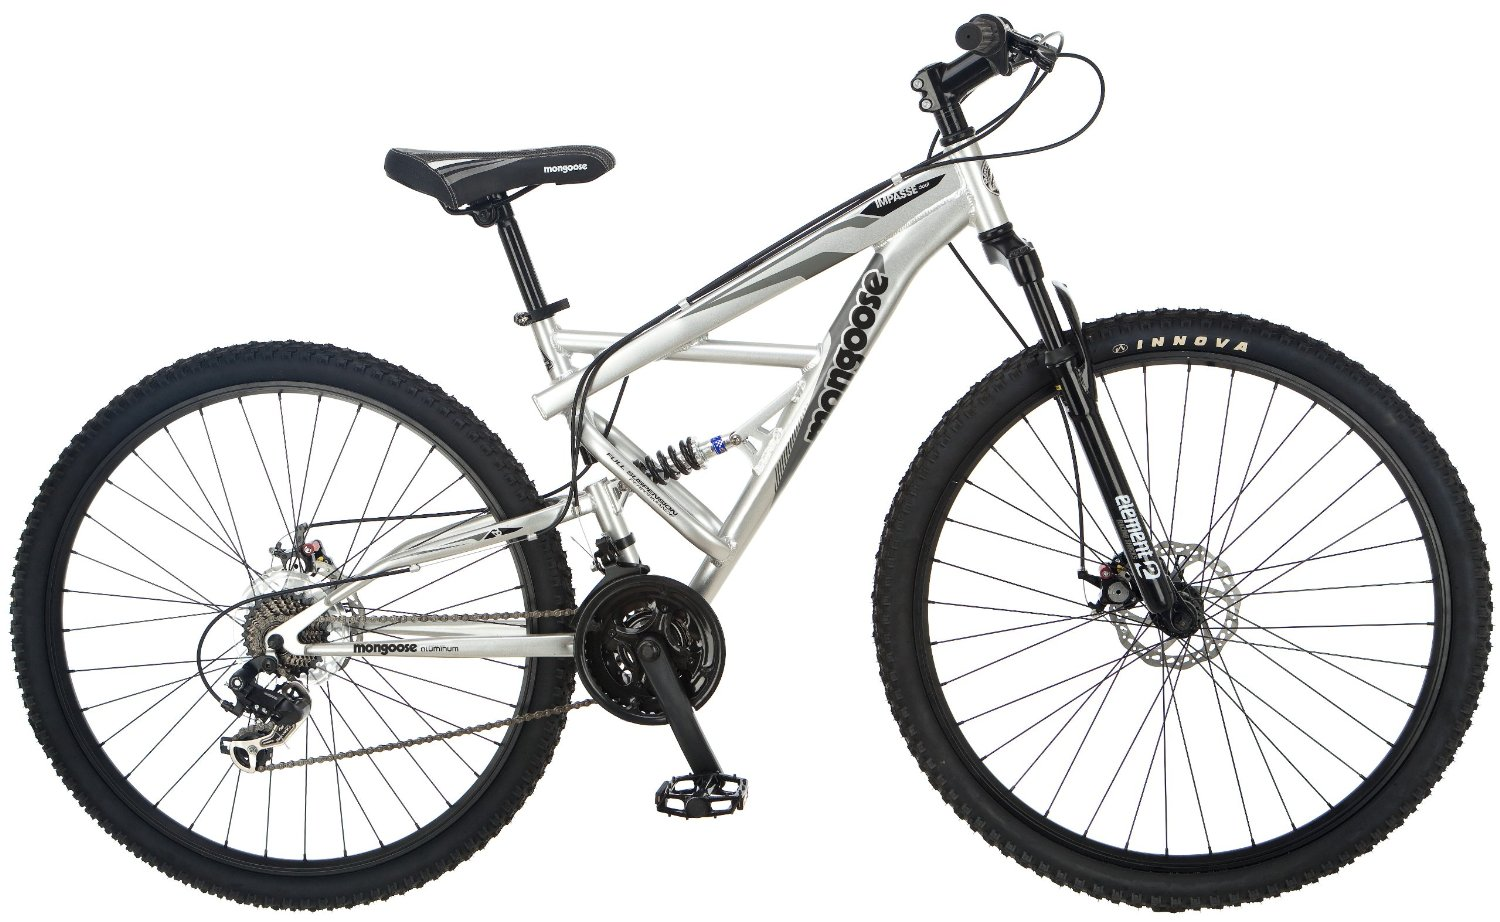 Amazon.com : Mongoose Impasse Dual Full Suspension Bicycle (29-Inch) : Dual Suspension Mountain Bicycles